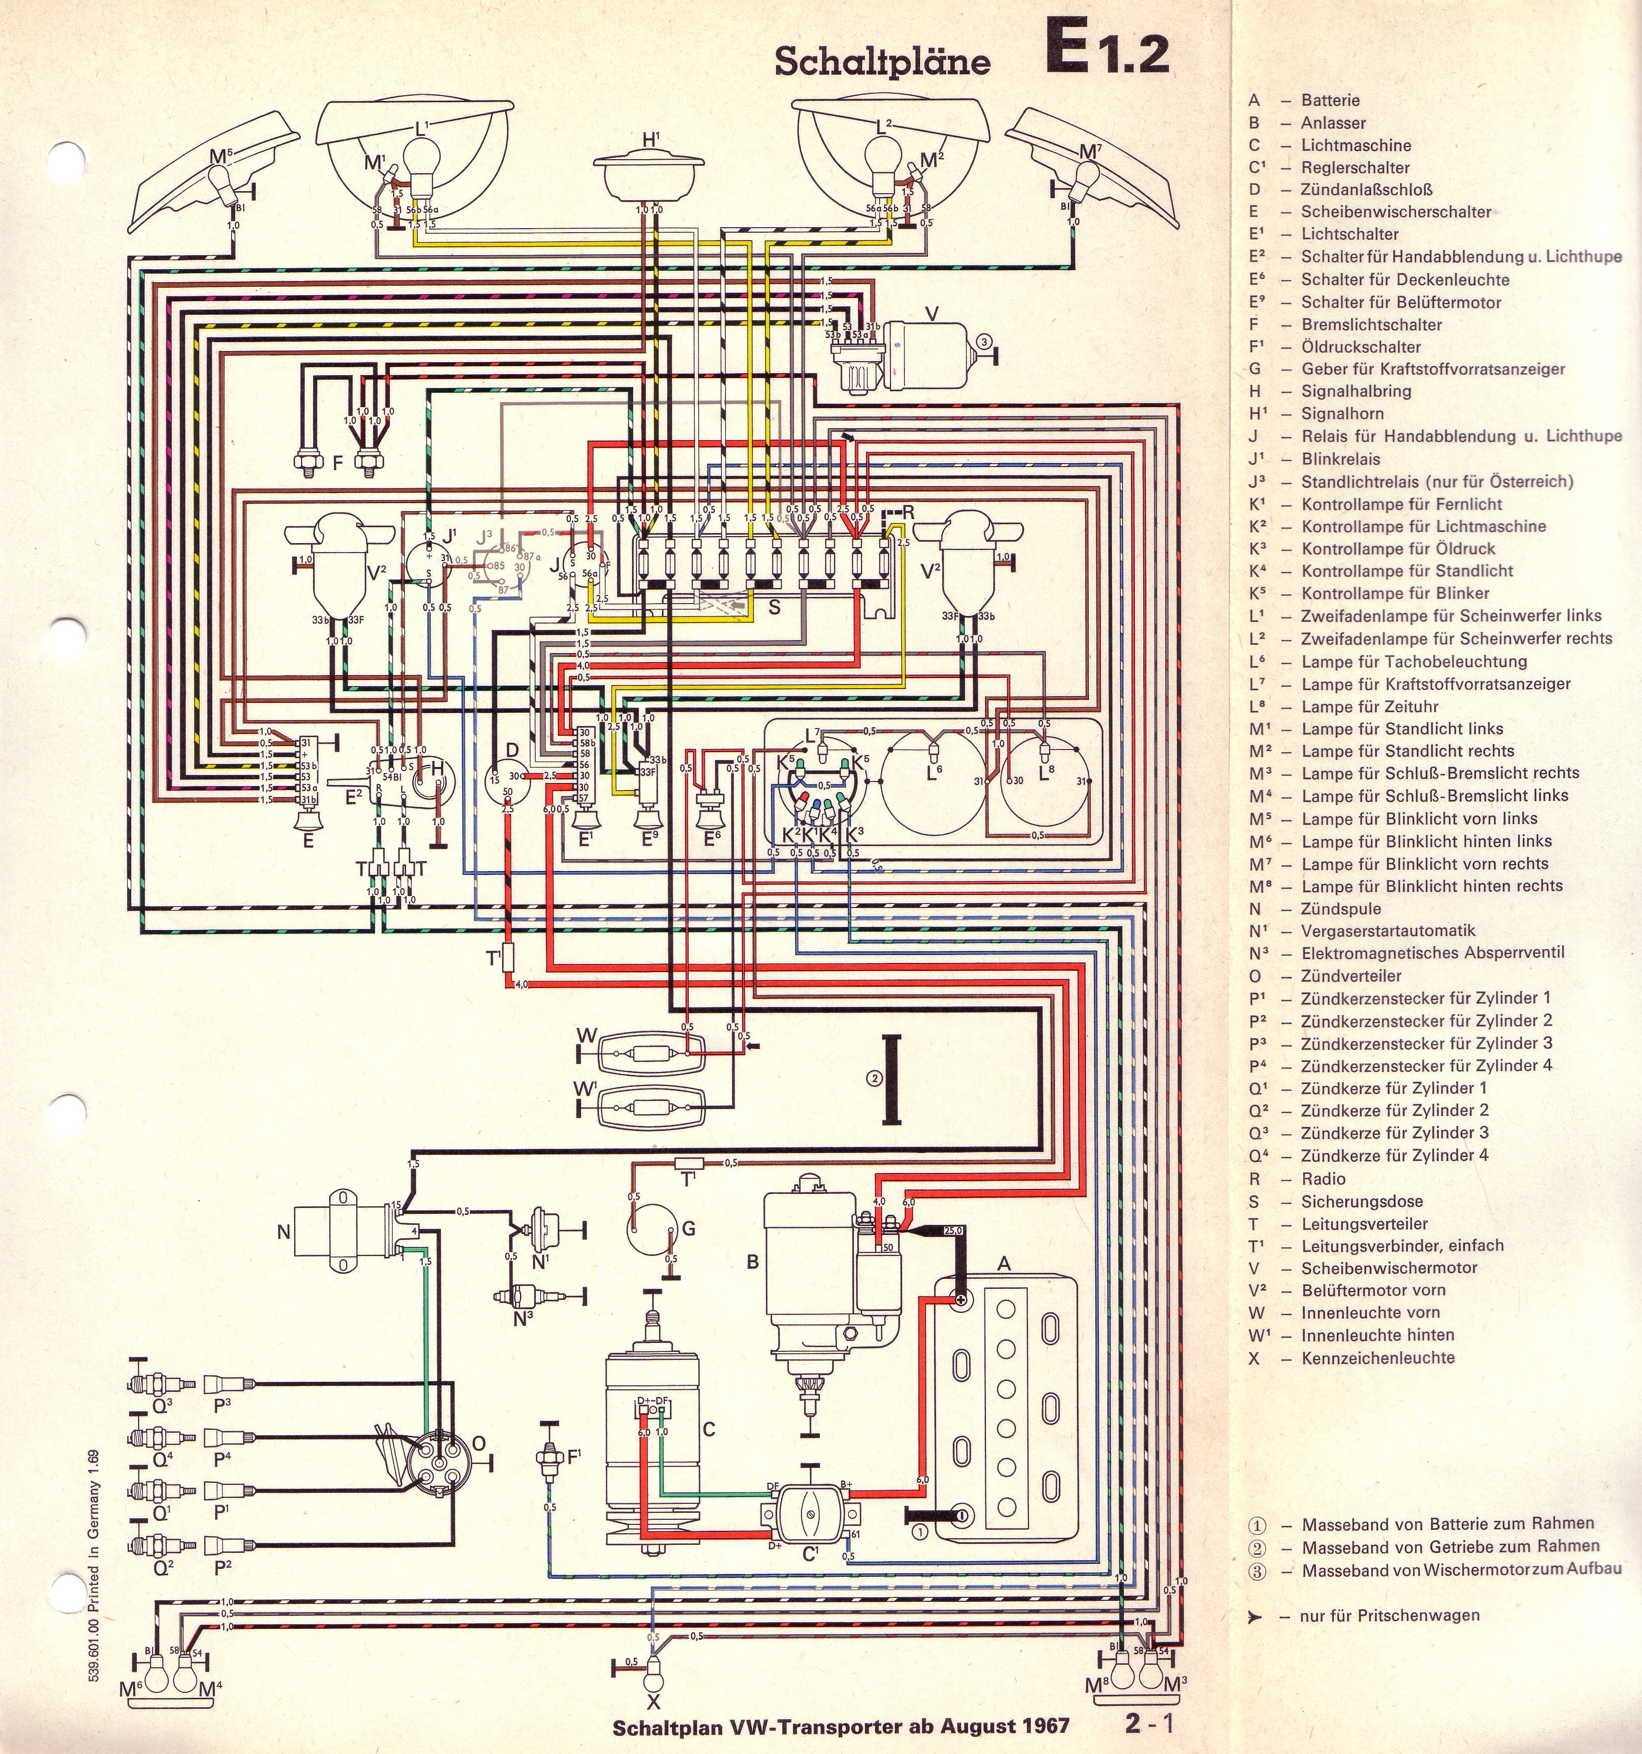 school bus parts diagram recon light bar wiring thomas buses diagrams free engine image